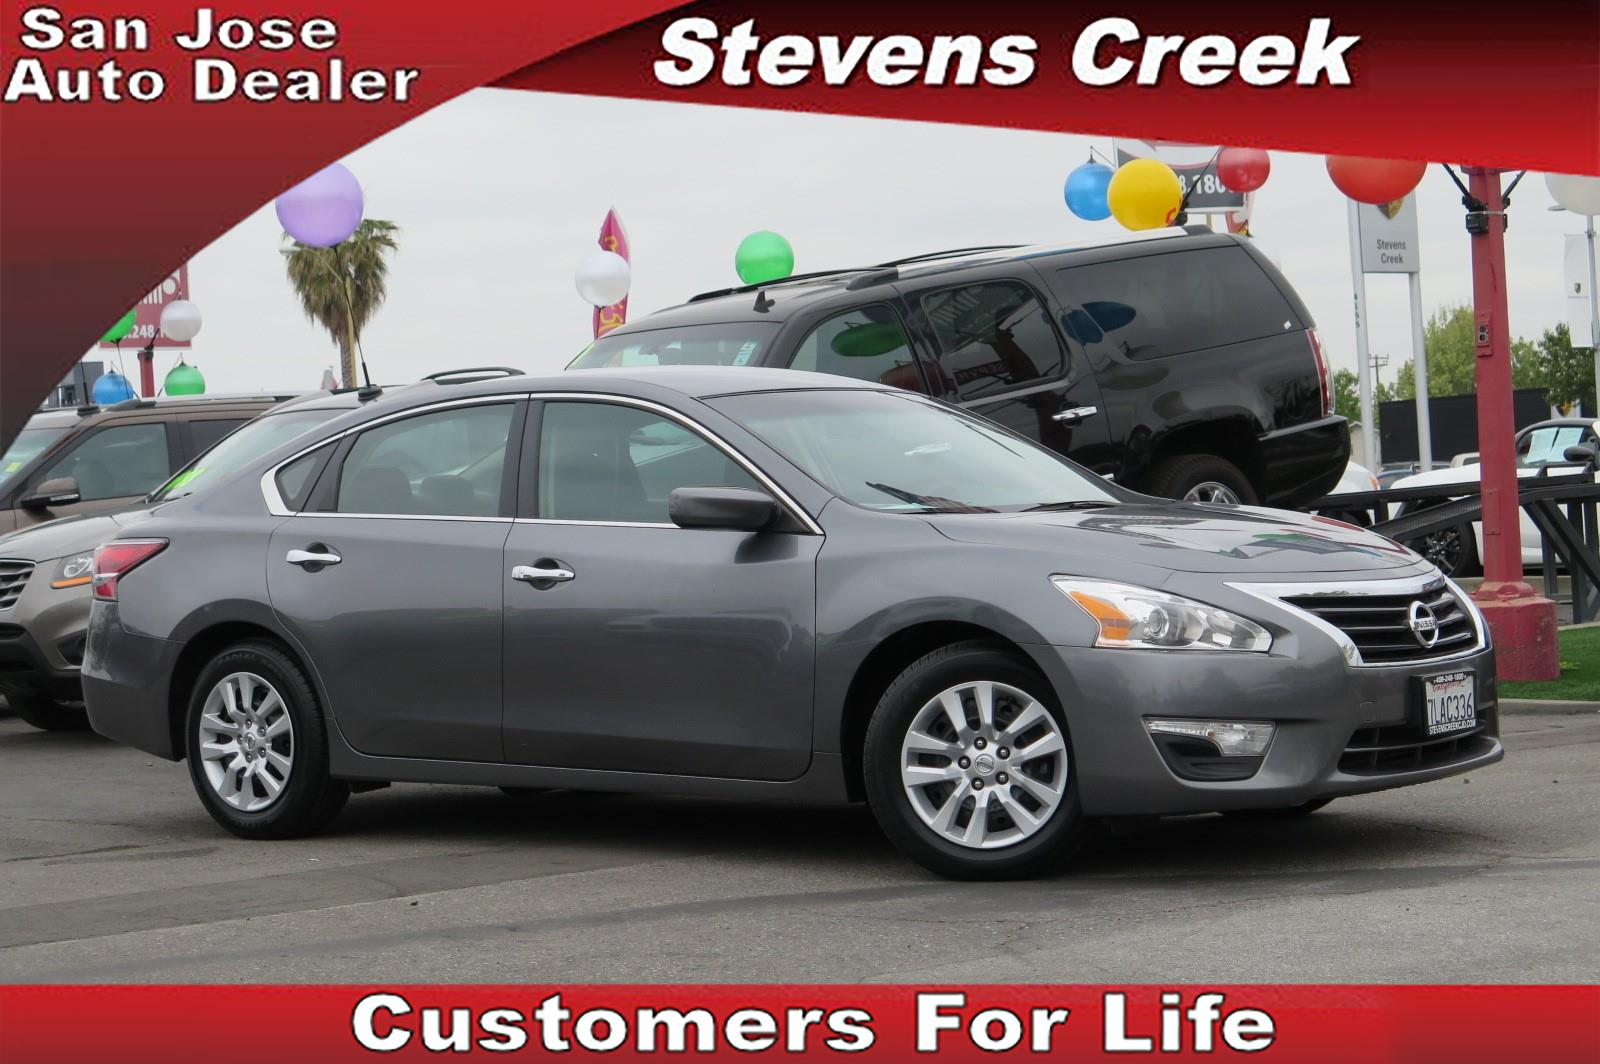 Stevens Creek Chrysler Jeep Dodge 2015 Nissan Altima 2.5 S Sedan